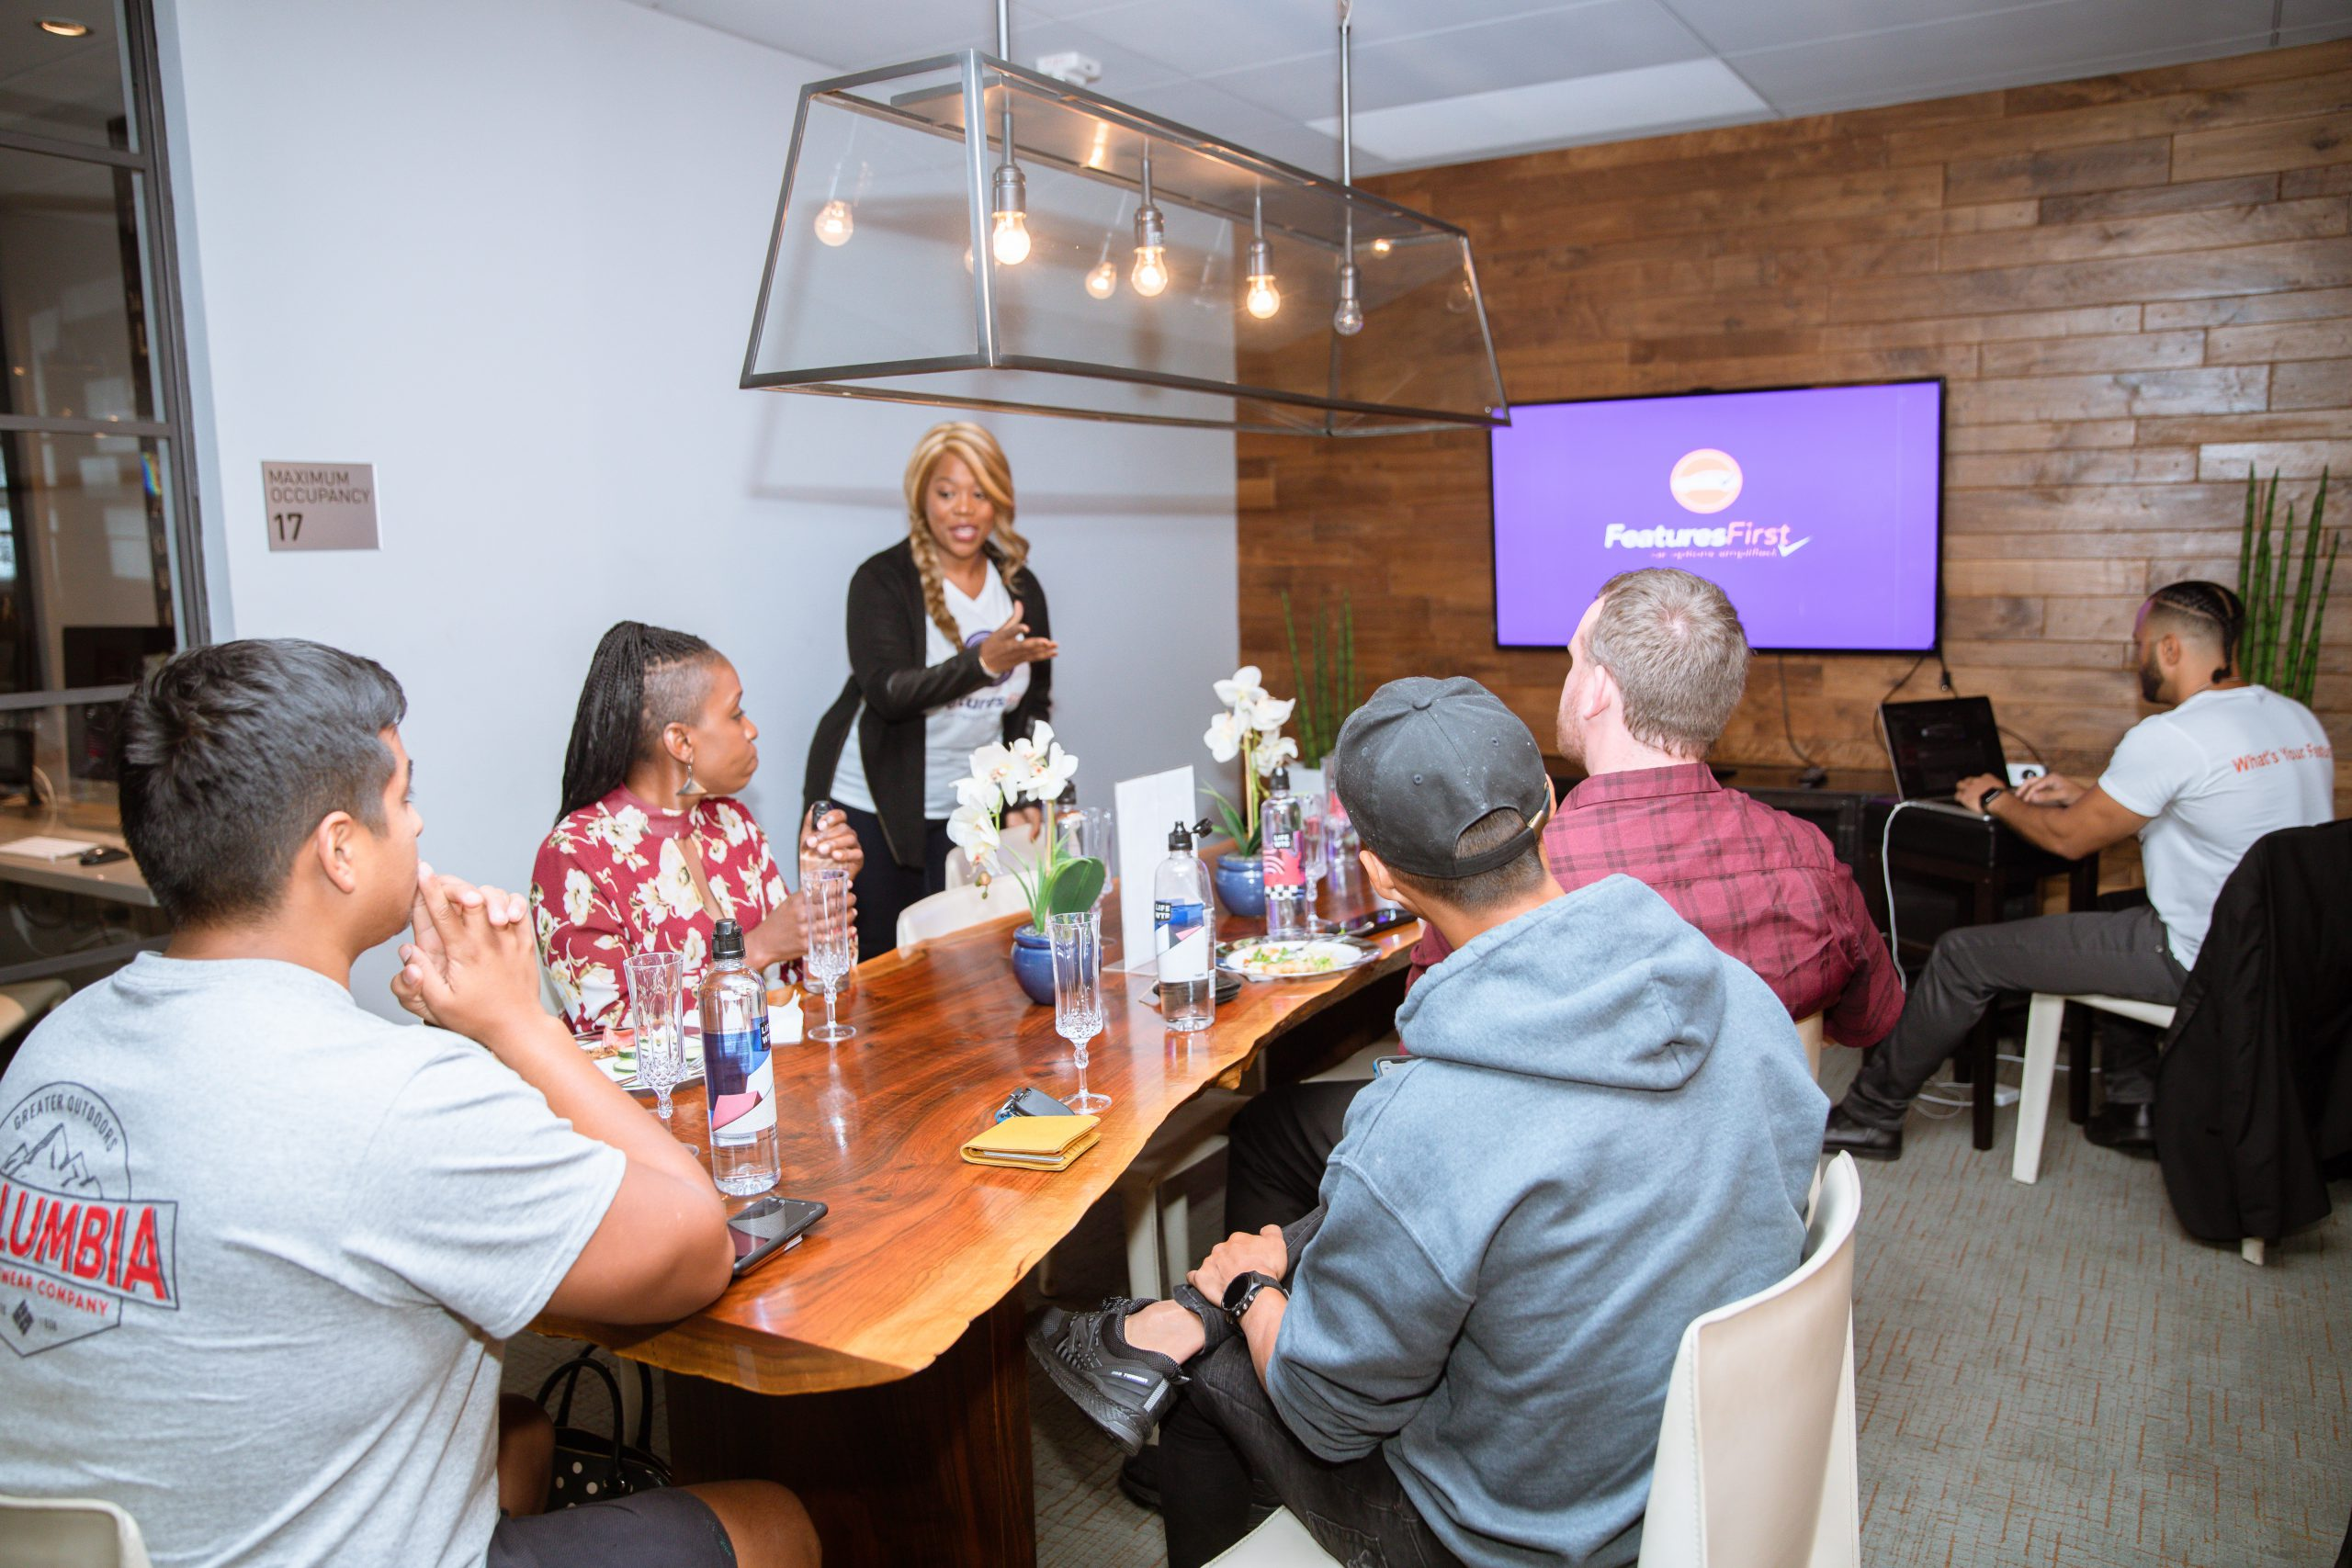 Founder Lisa Bailey stands next to a wooden table with five people sitting as they look at powerpoint presentation on the wall with the FeaturesFirst logo on a purple background